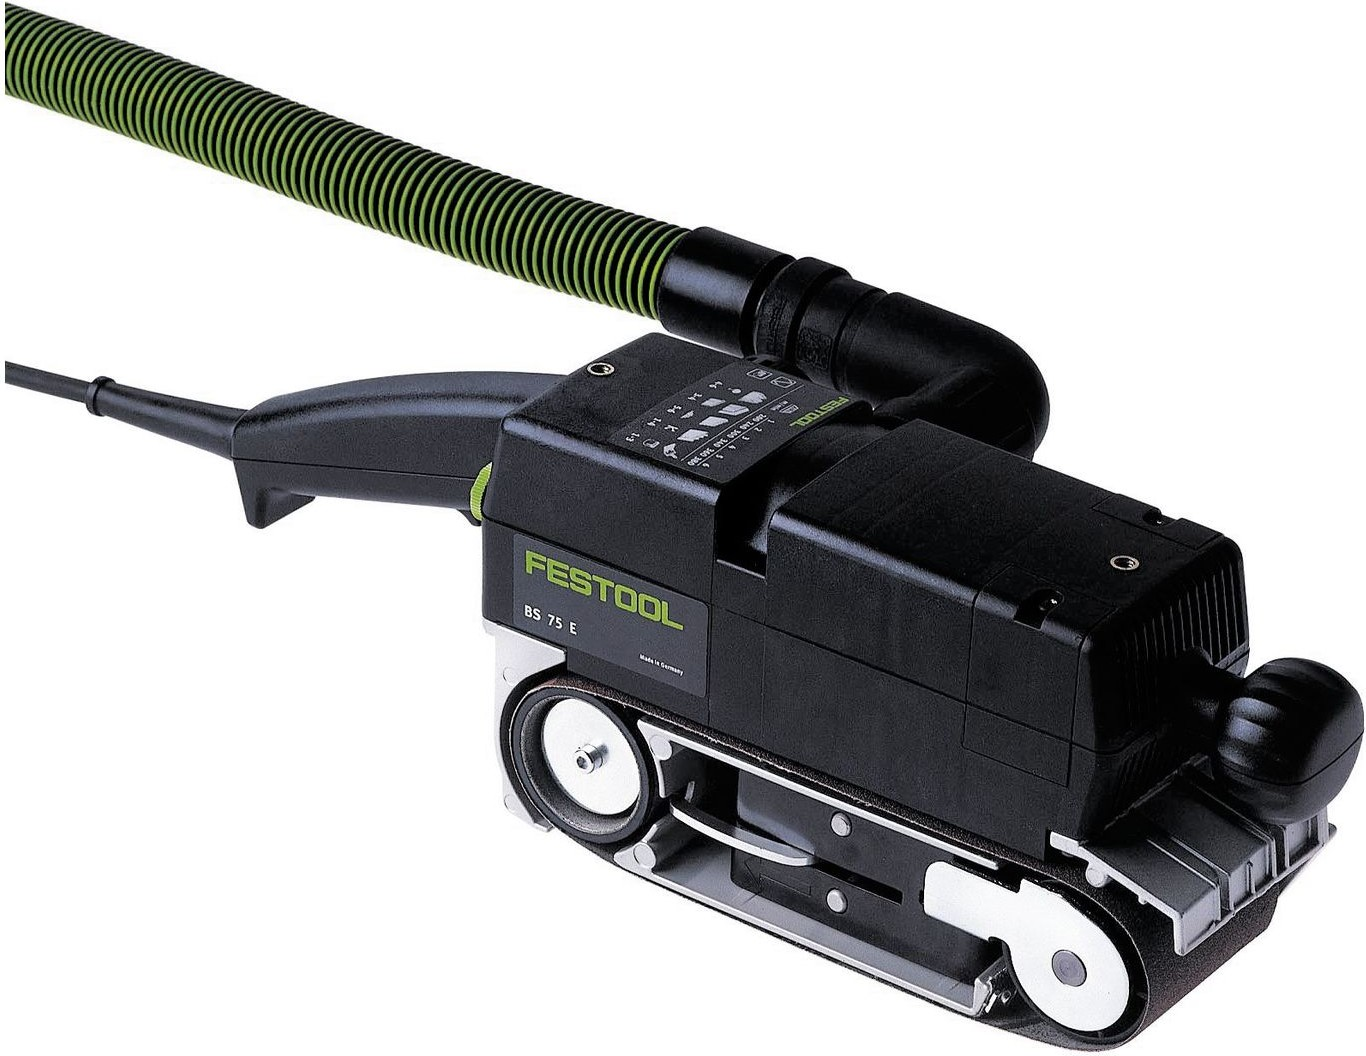 Nauhahiomakone Festool BS 75 E-PLUS